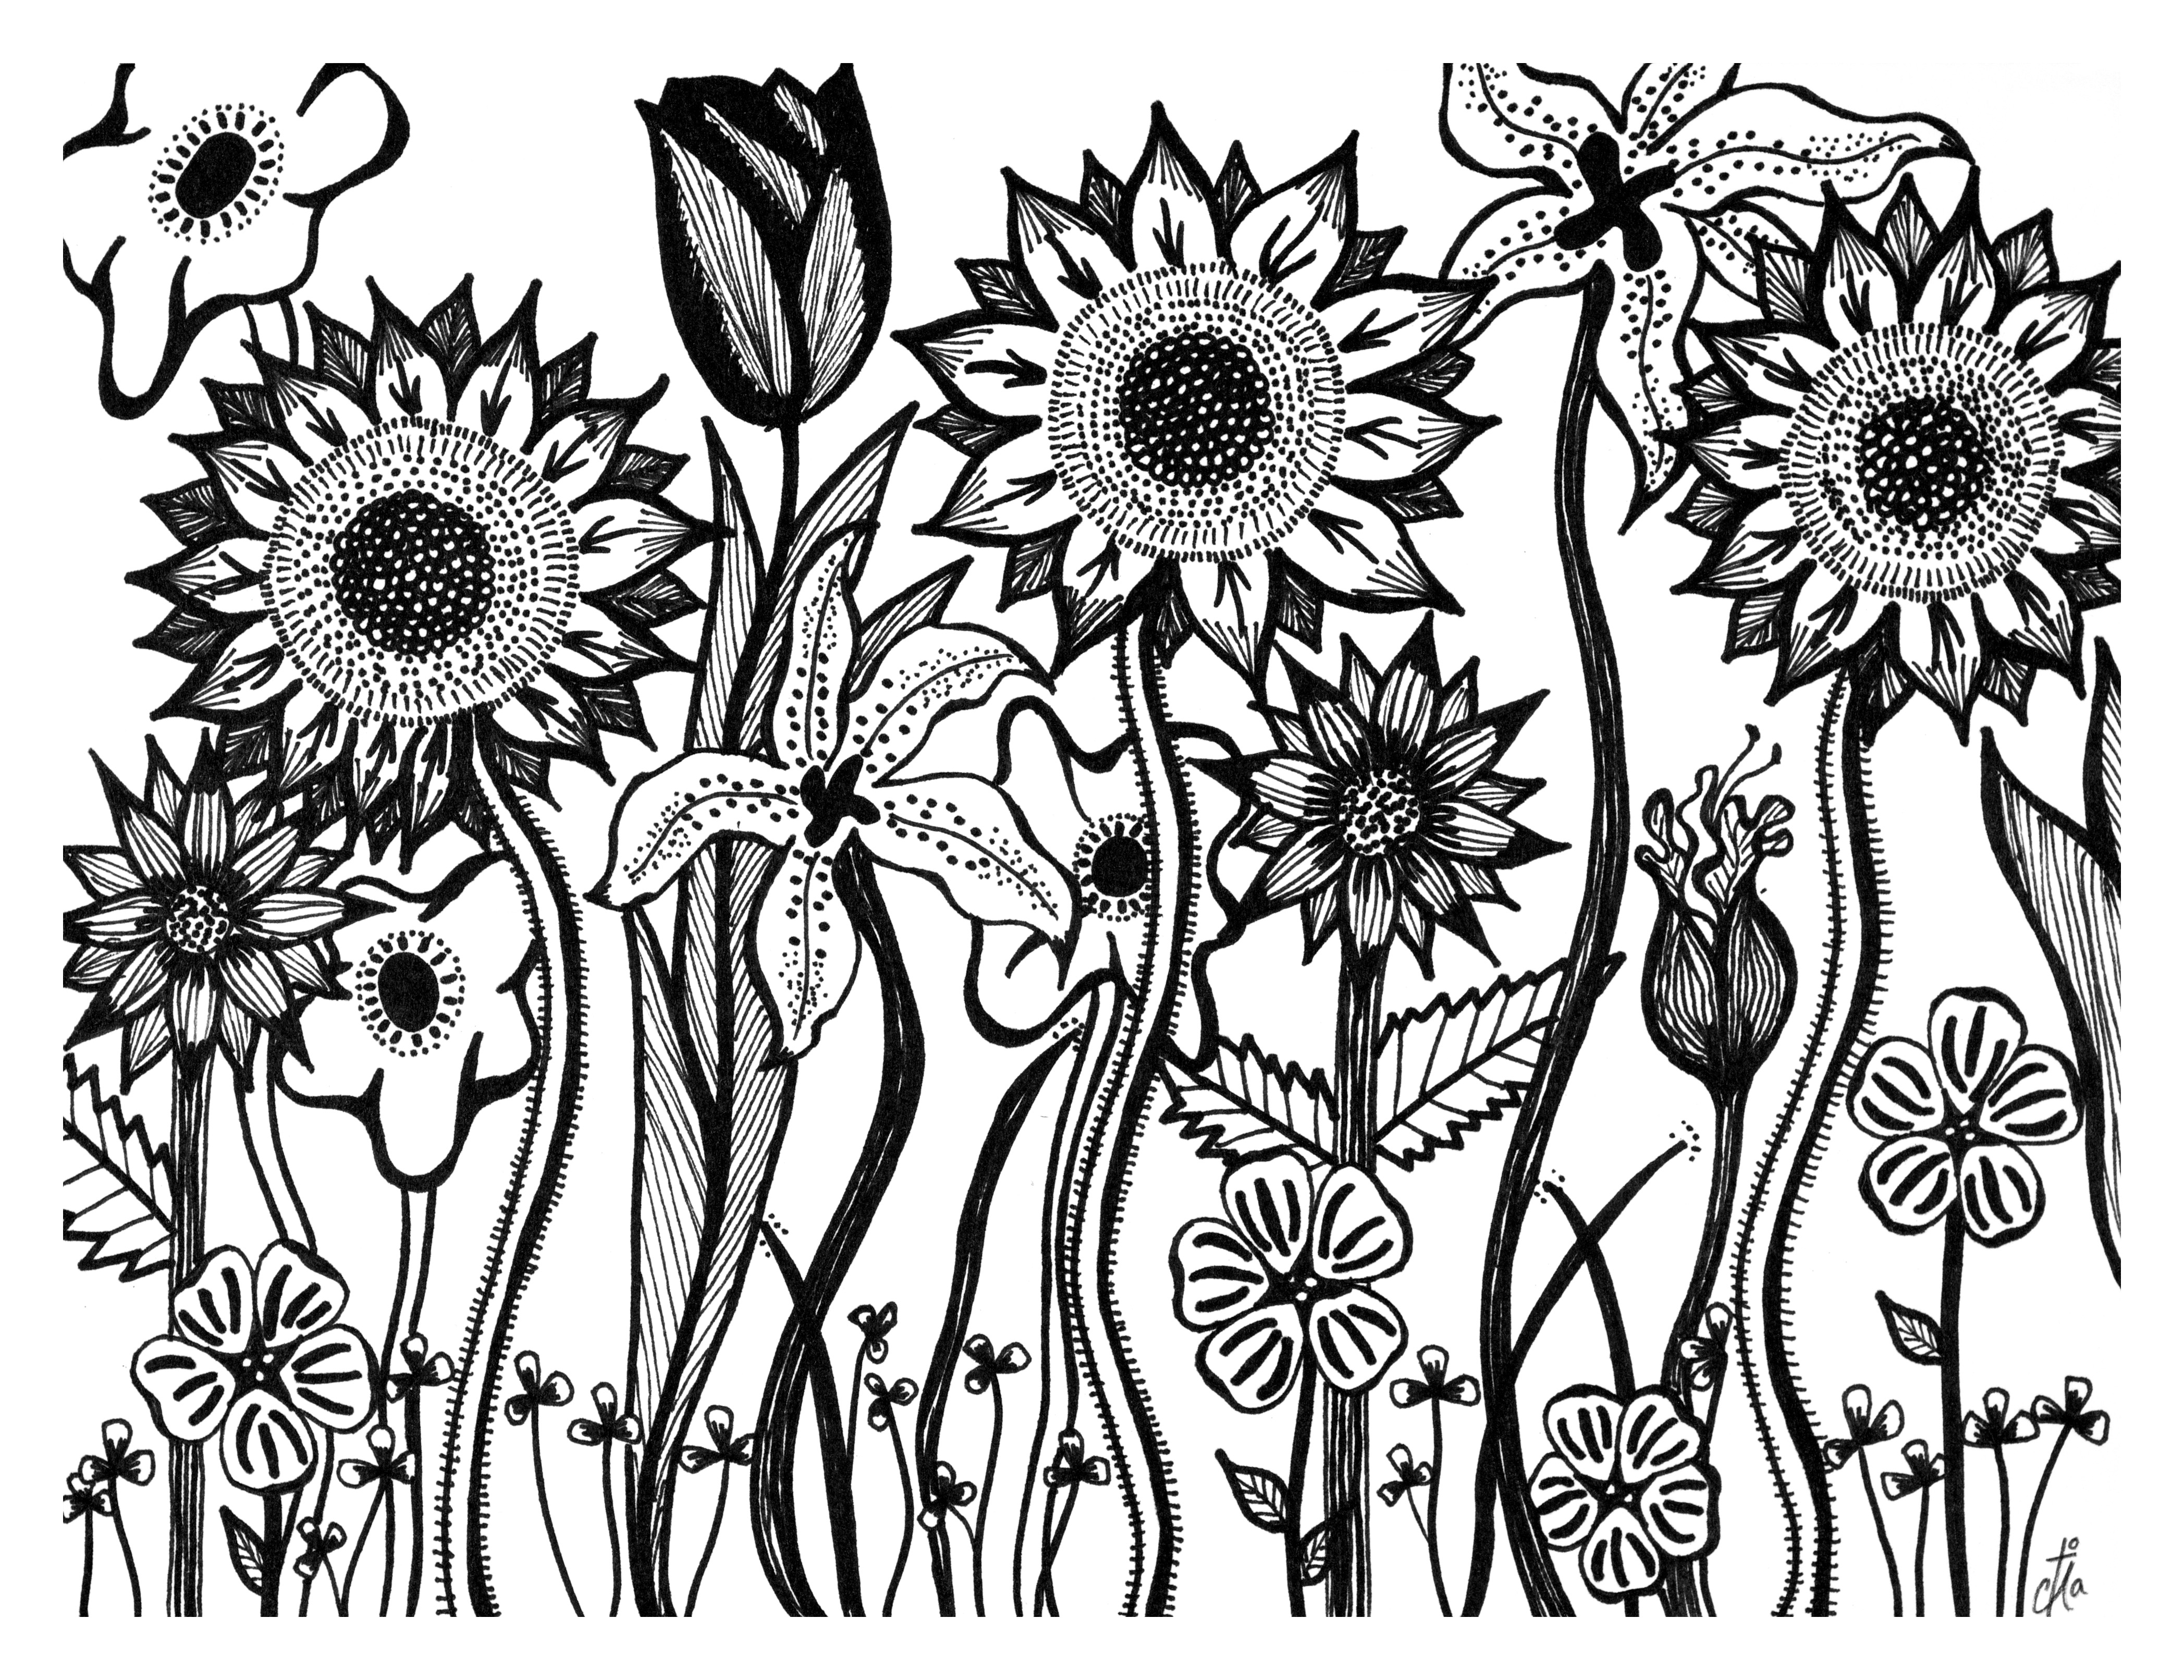 4190x3223 Eleletsitz Sunflowers Drawing Tumblr Images